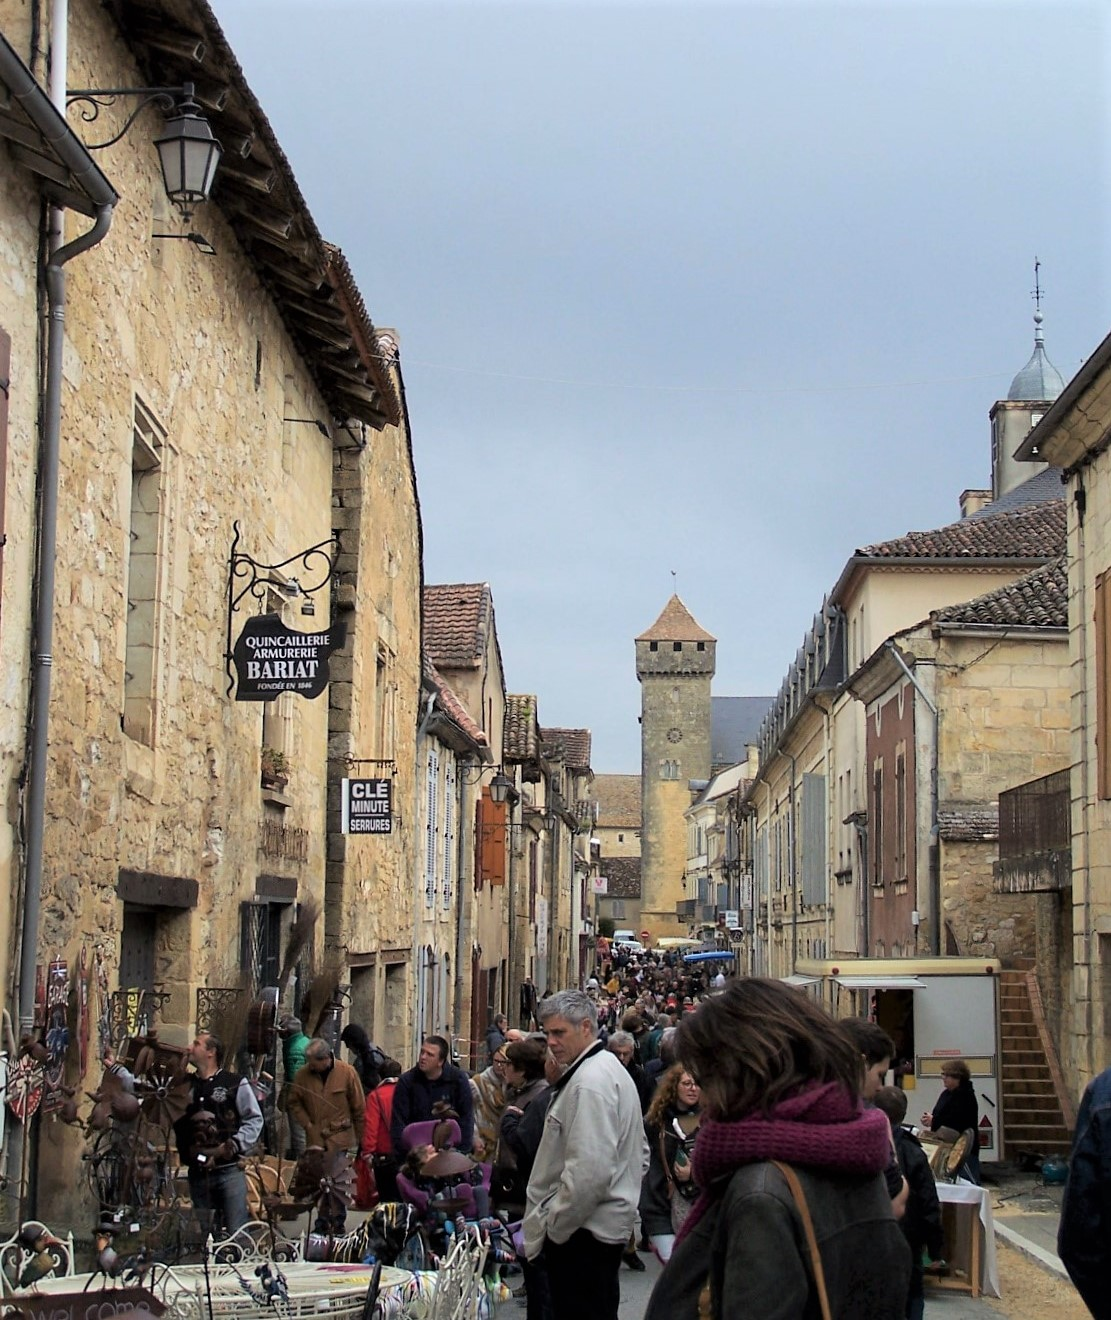 The village markets are irresistible! This is Beaumont-du-Perigord